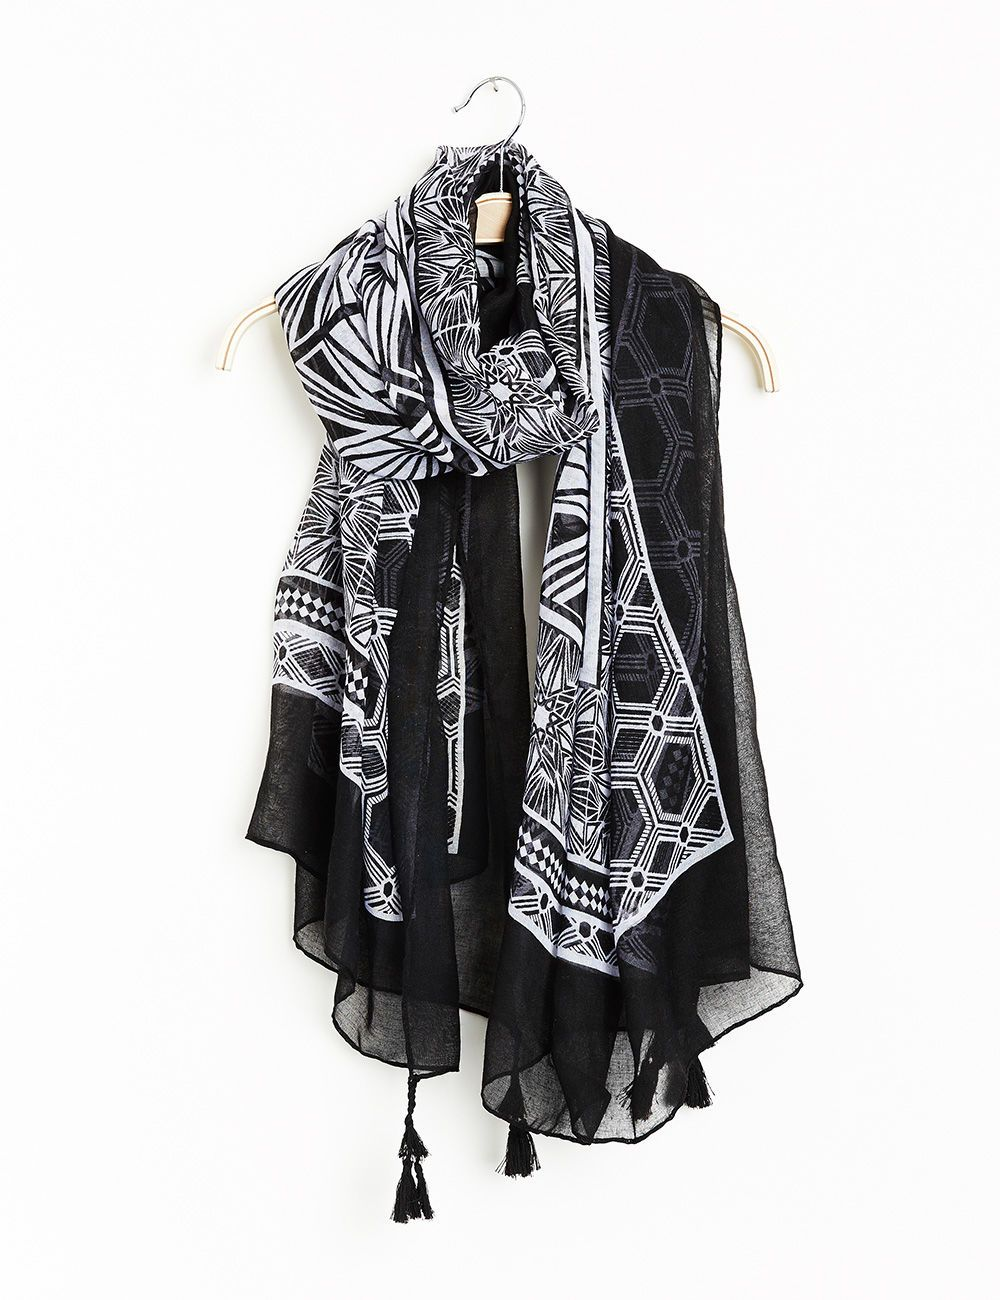 official differently great deals 2017 Foulard imprimé géométrique noir et blanc - Jennyfer e-shop ...